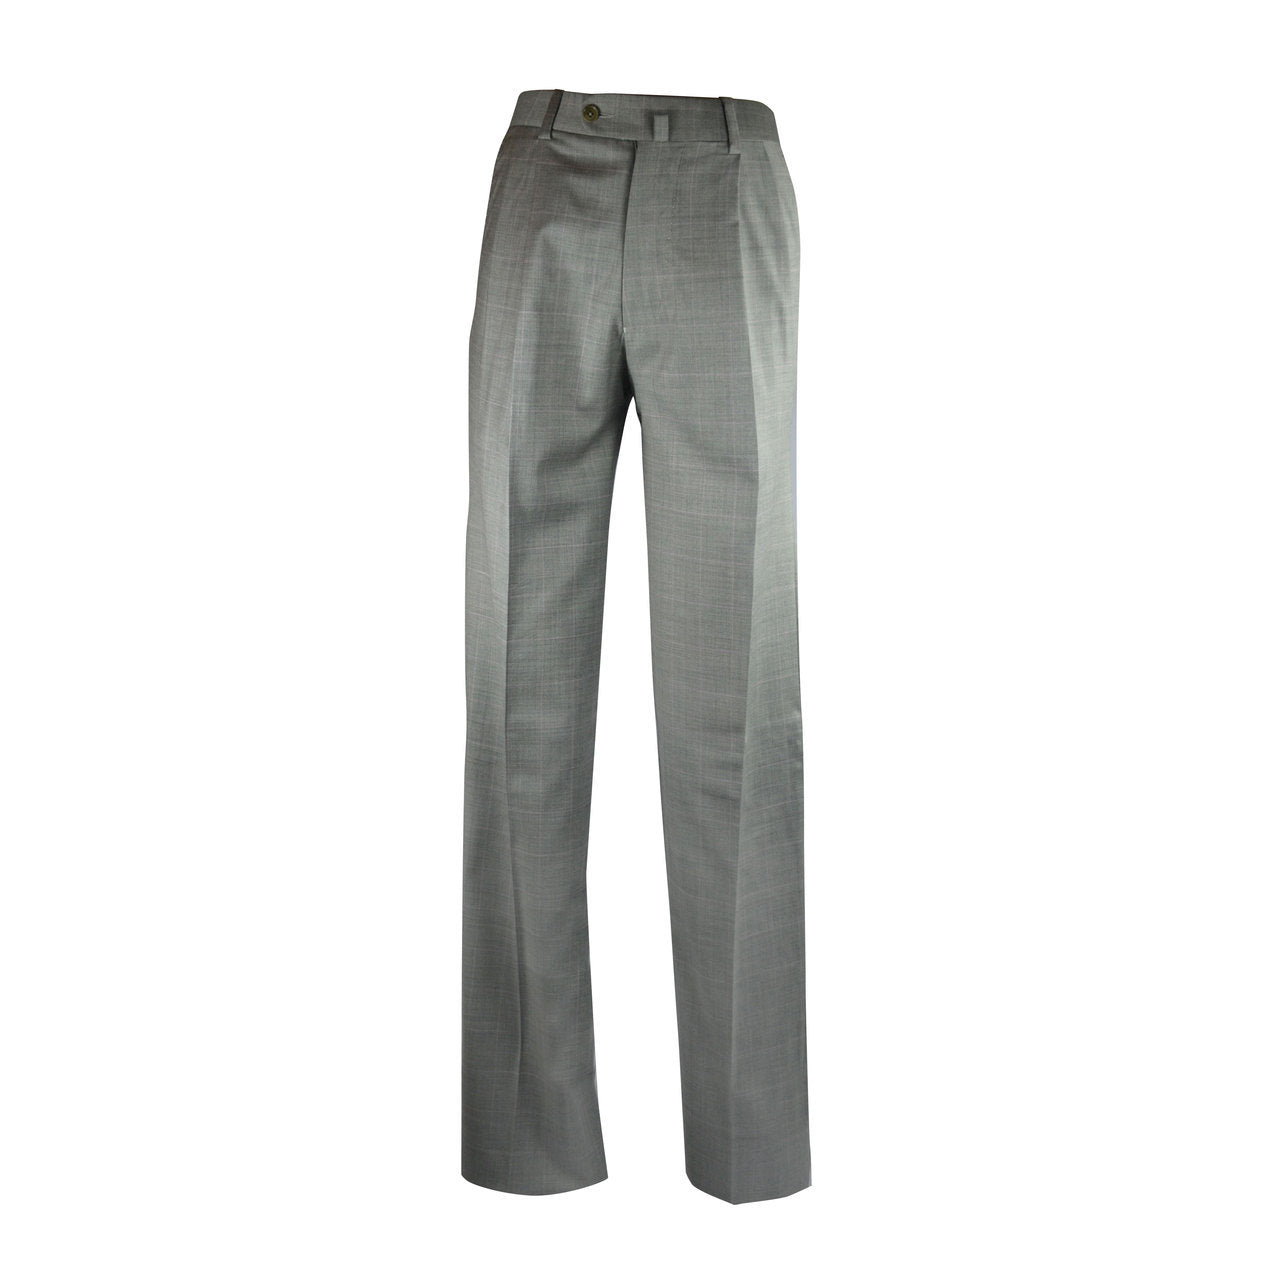 Newport Pleated Front Trouser - Mist